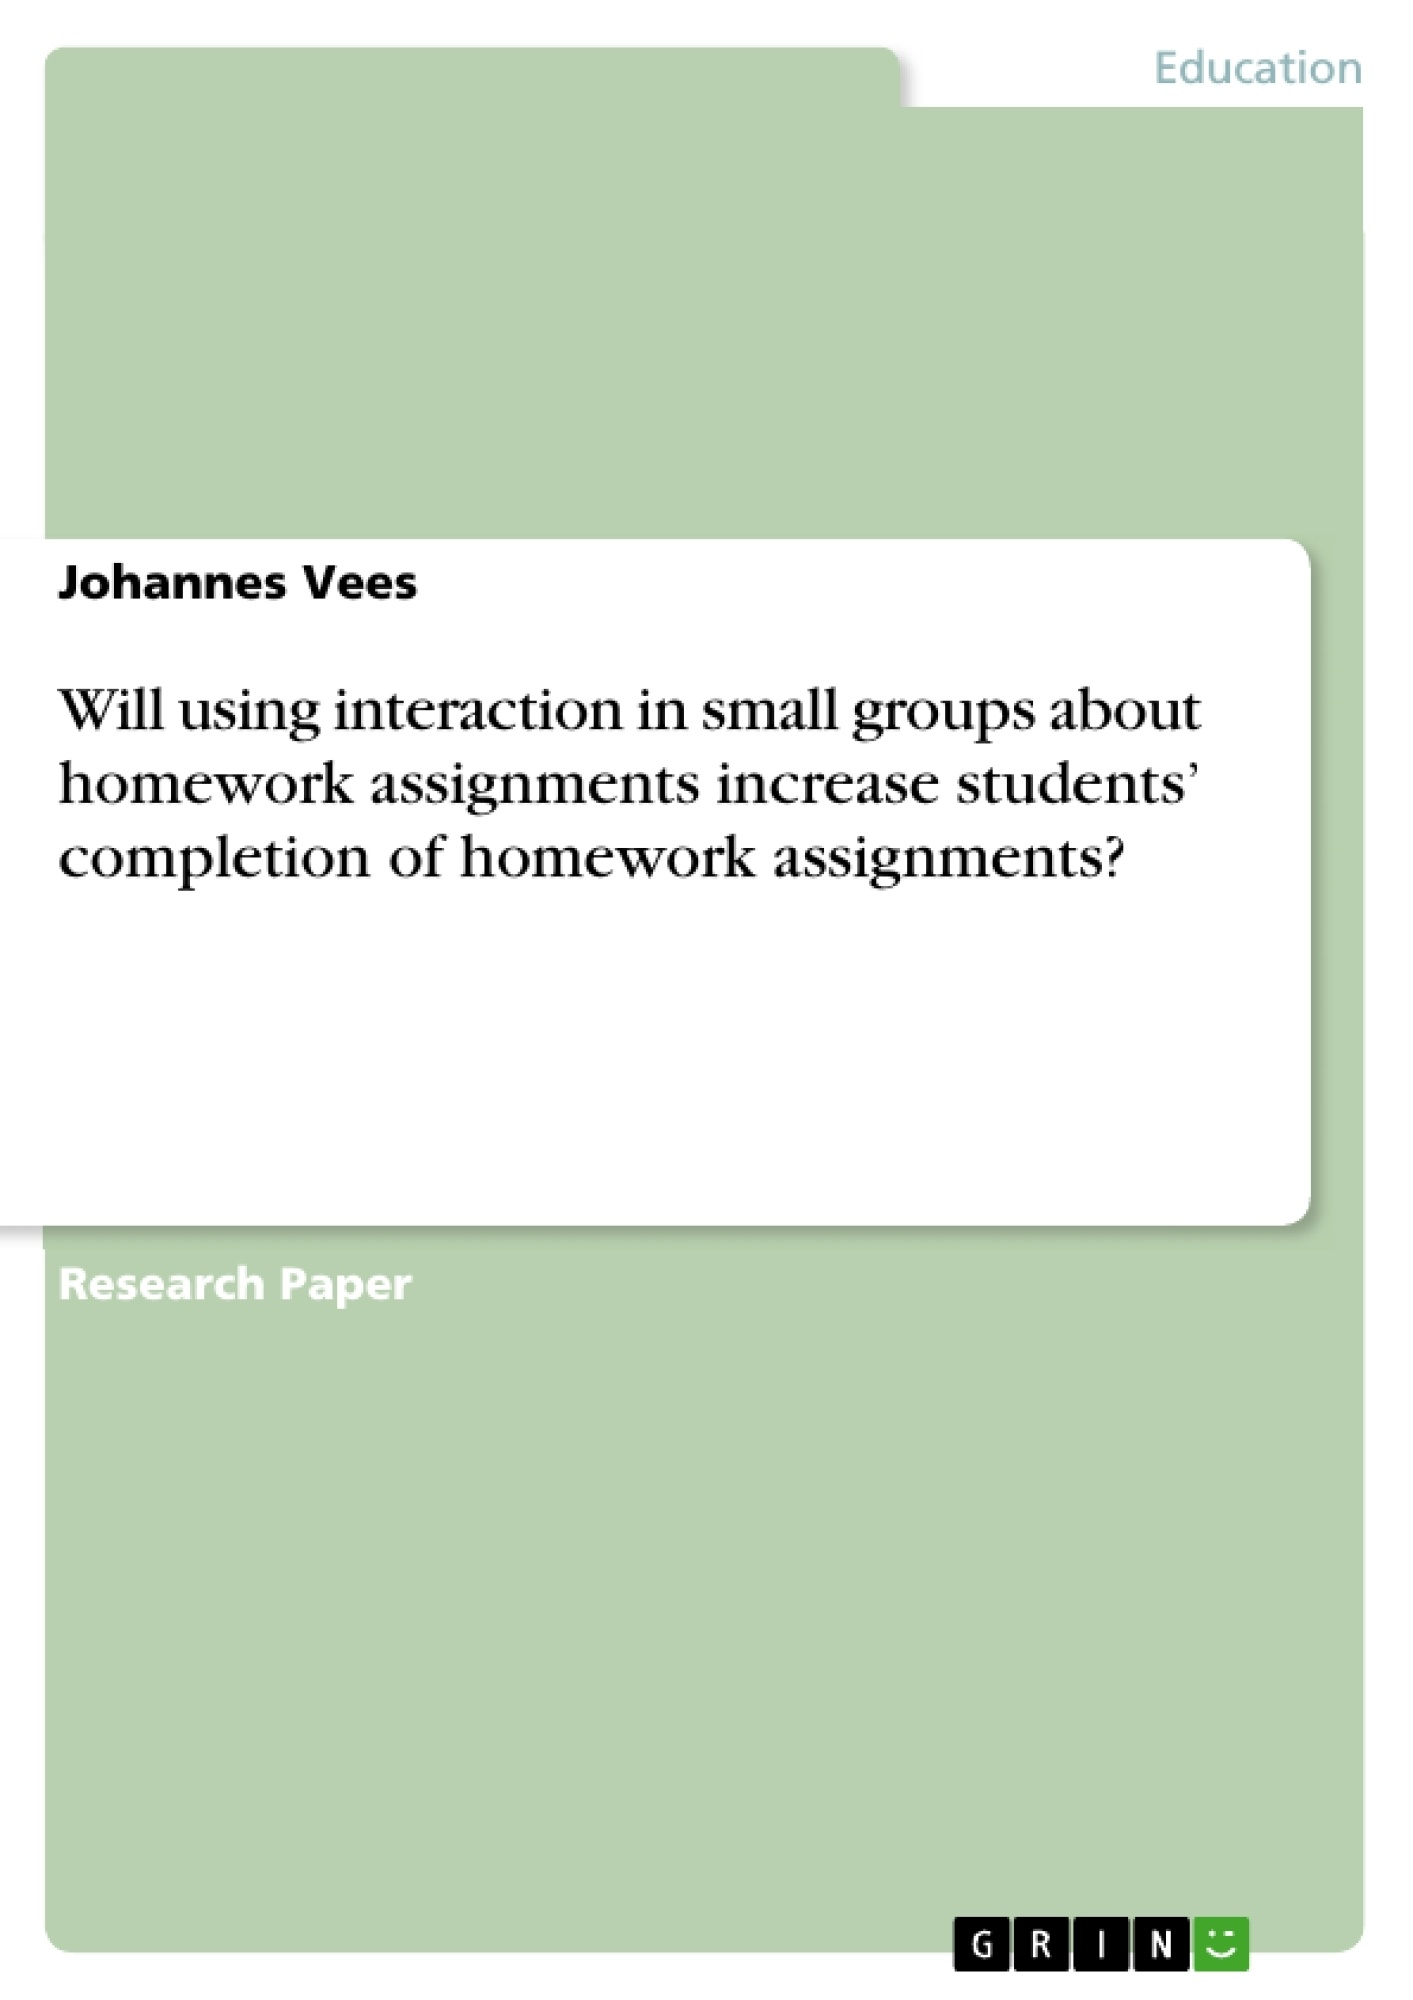 Title: Will using interaction in small groups about homework assignments increase students' completion of homework assignments?